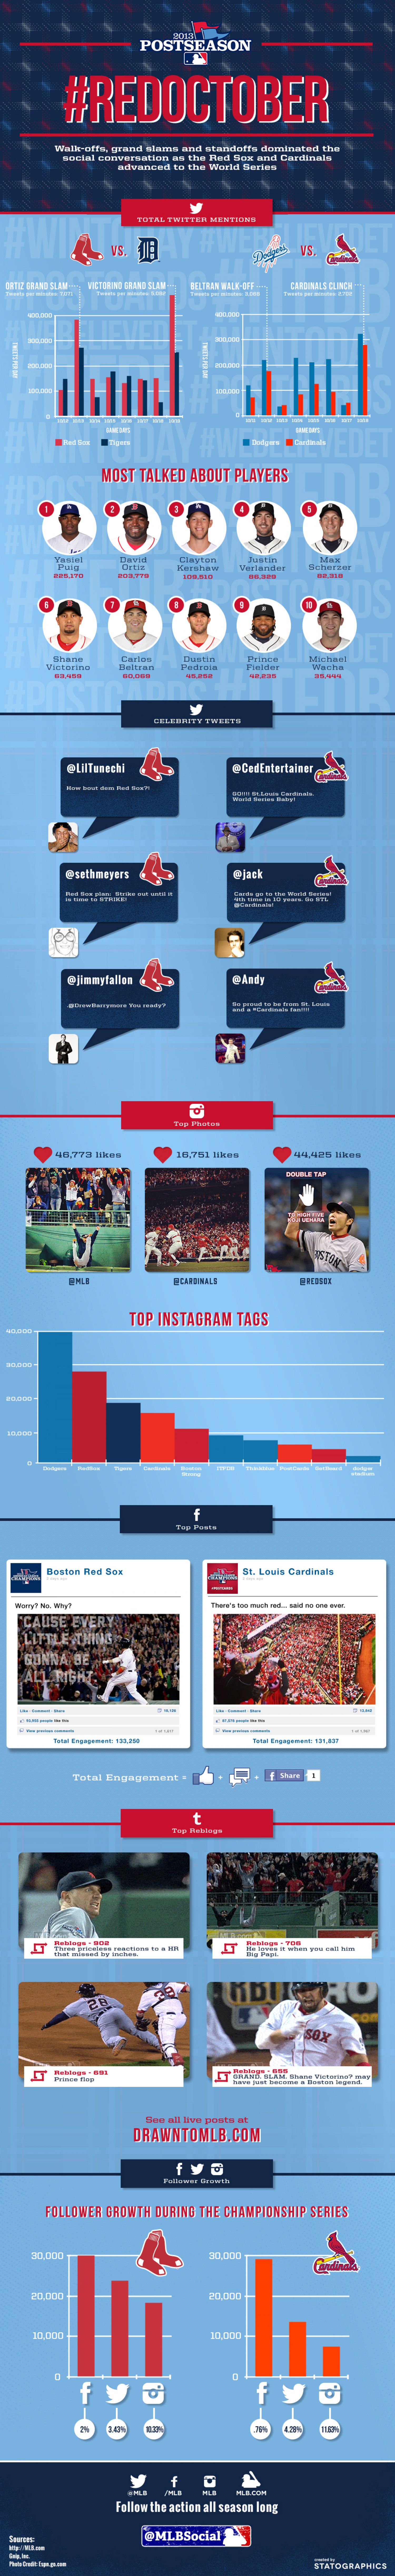 MLB League Championship Series Infographic